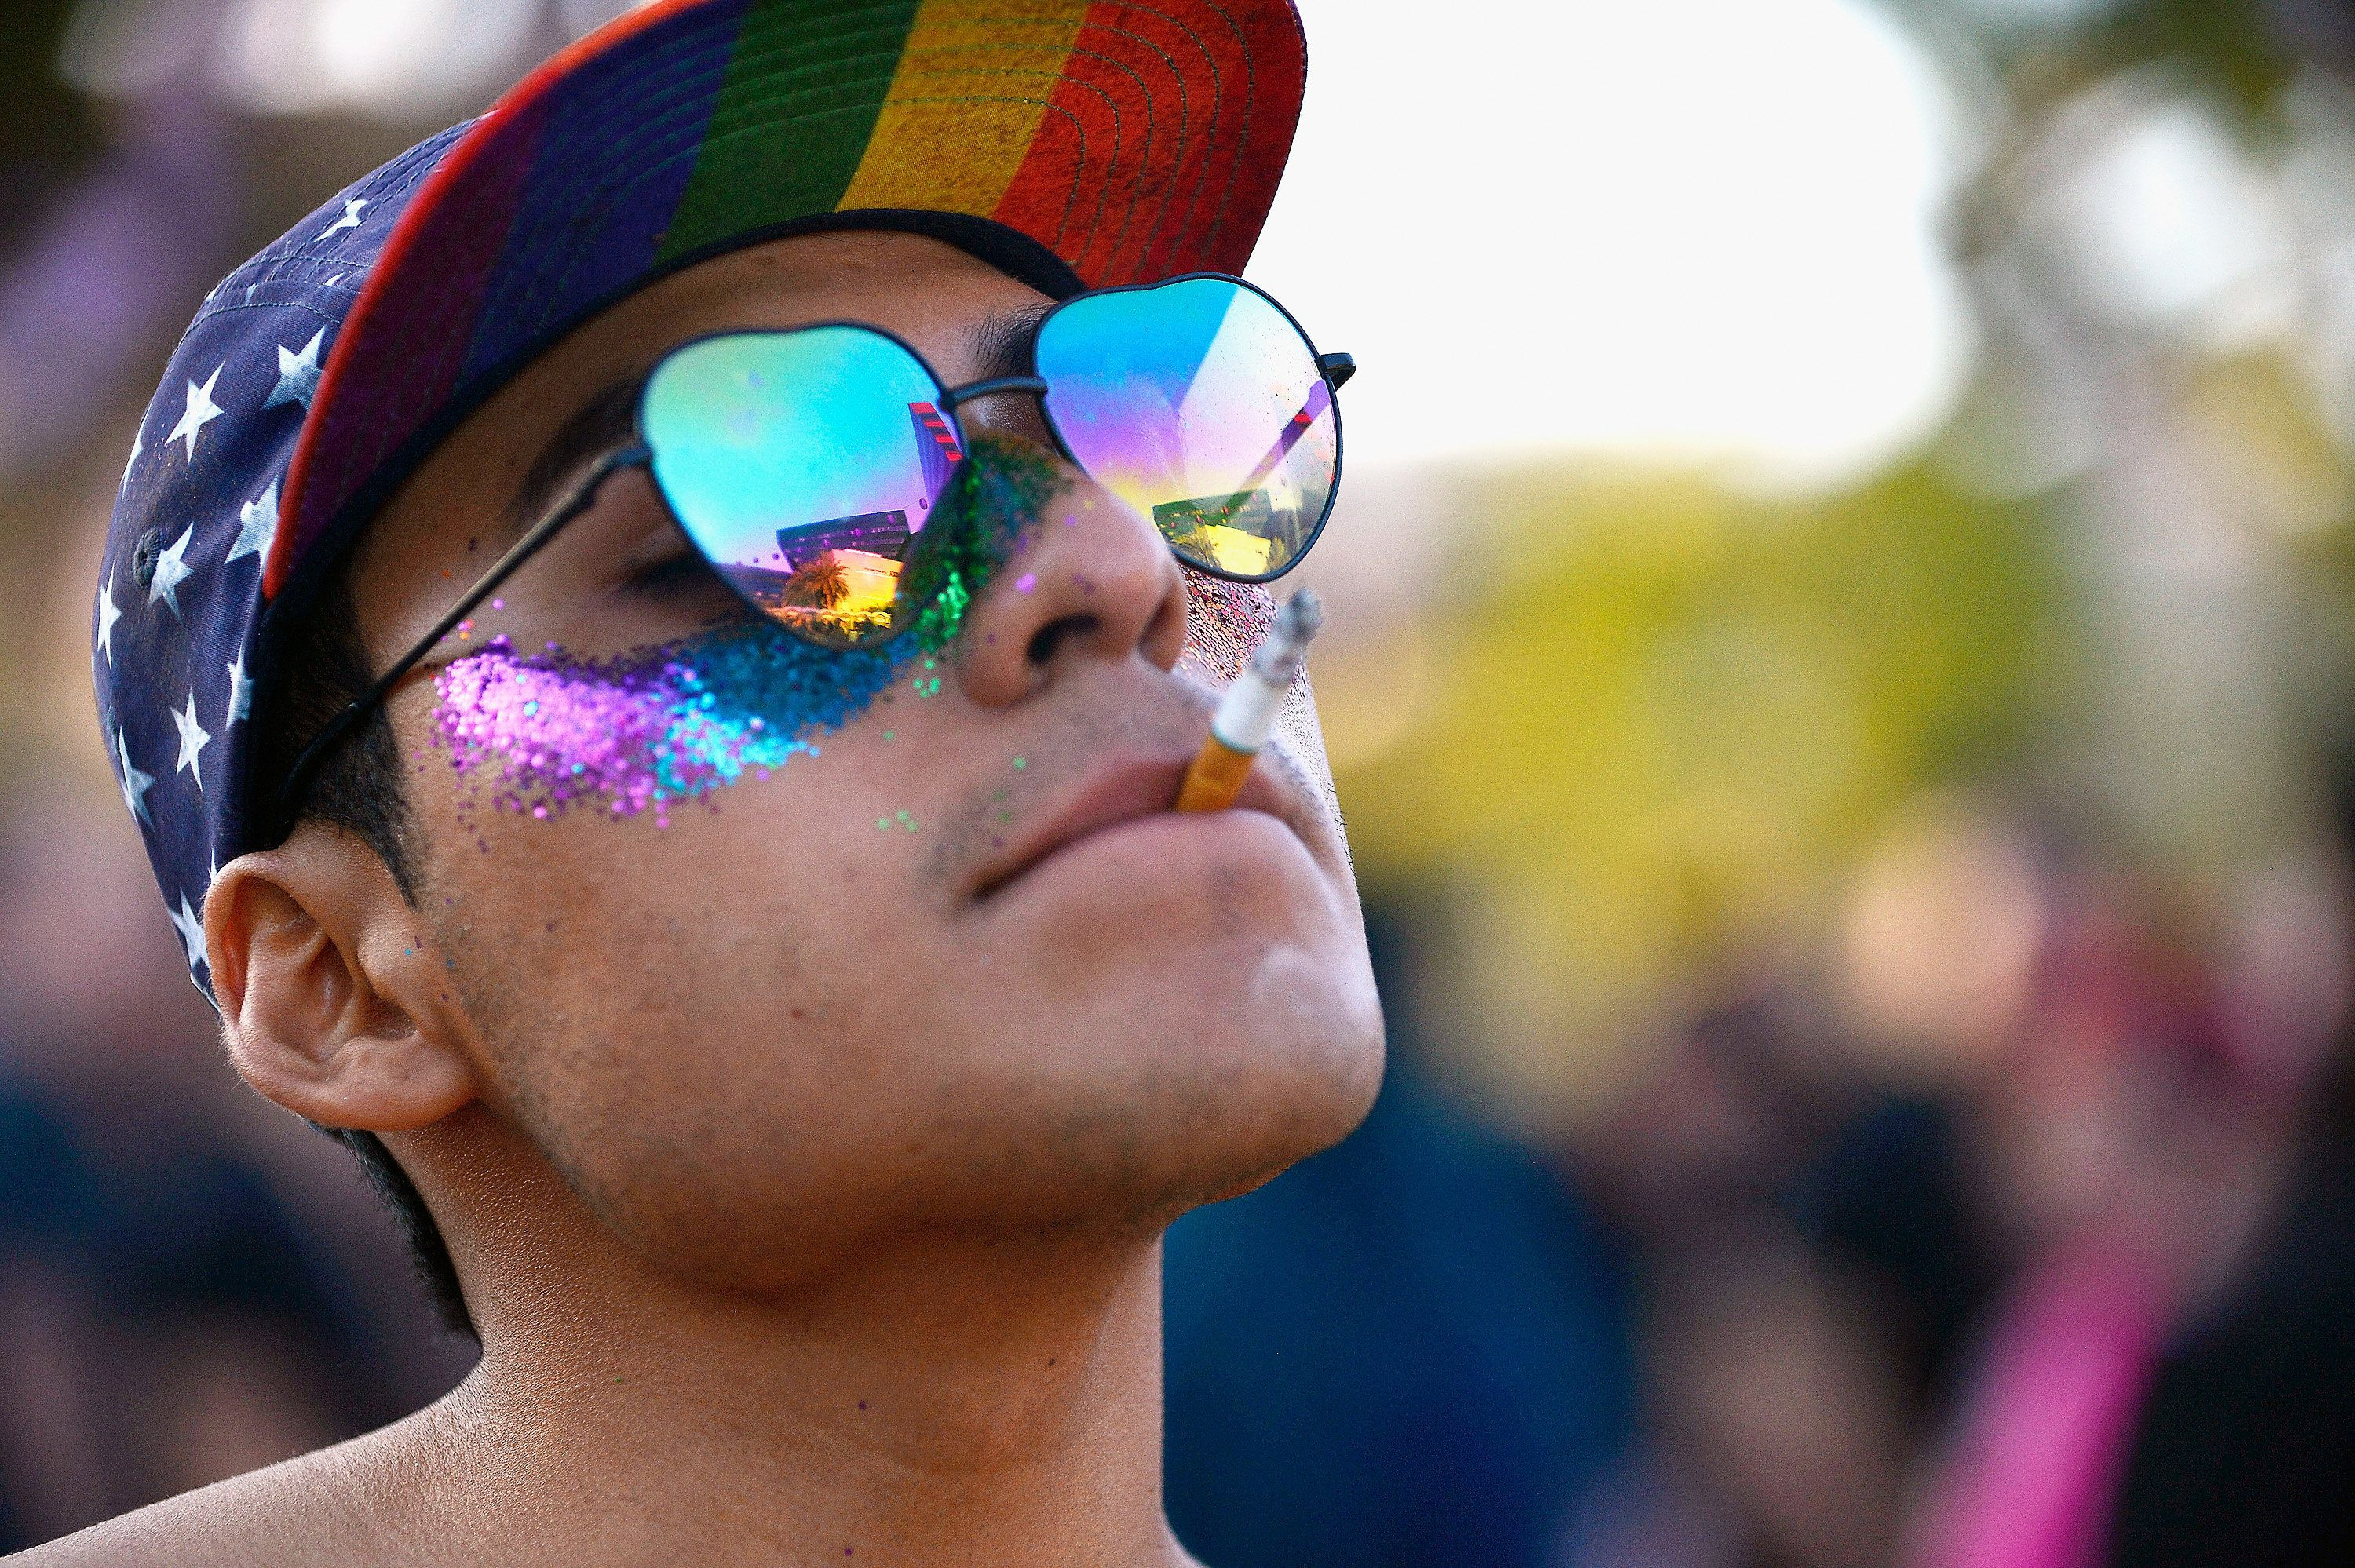 A participant smokes a cigarette at the LA Pride Music Festival and Parade 2017 on June 10, 2017 in West Hollywood, California. (Photo by Chelsea Guglielmino/Getty Images)